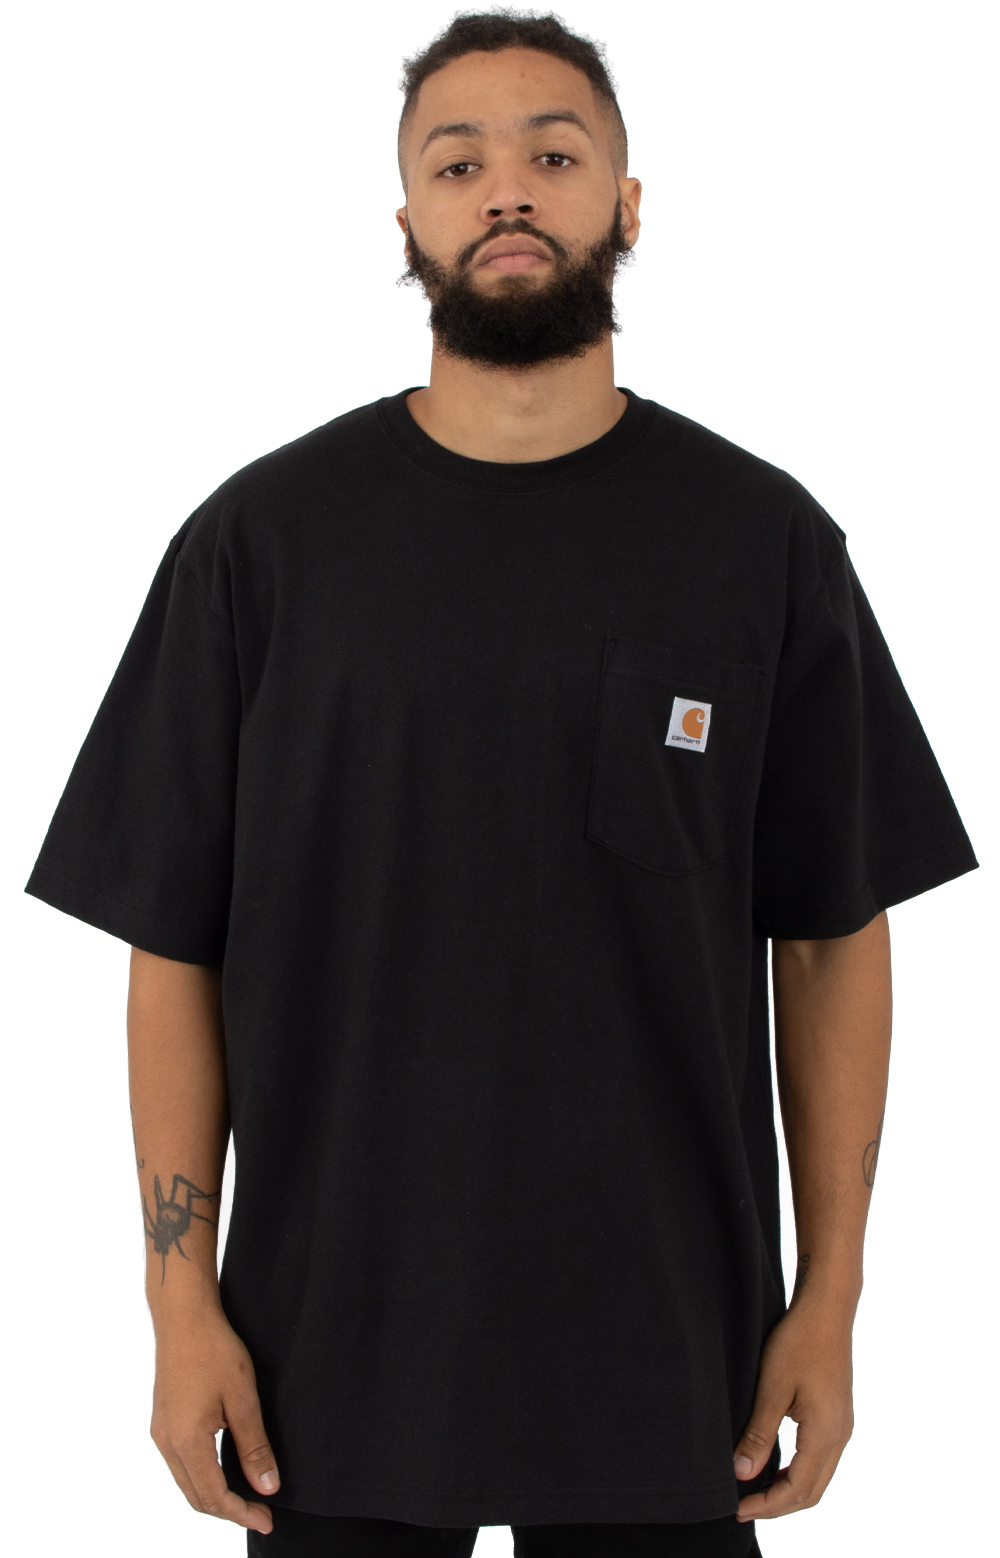 (K87) Workwear Pocket T-Shirt - Black 1